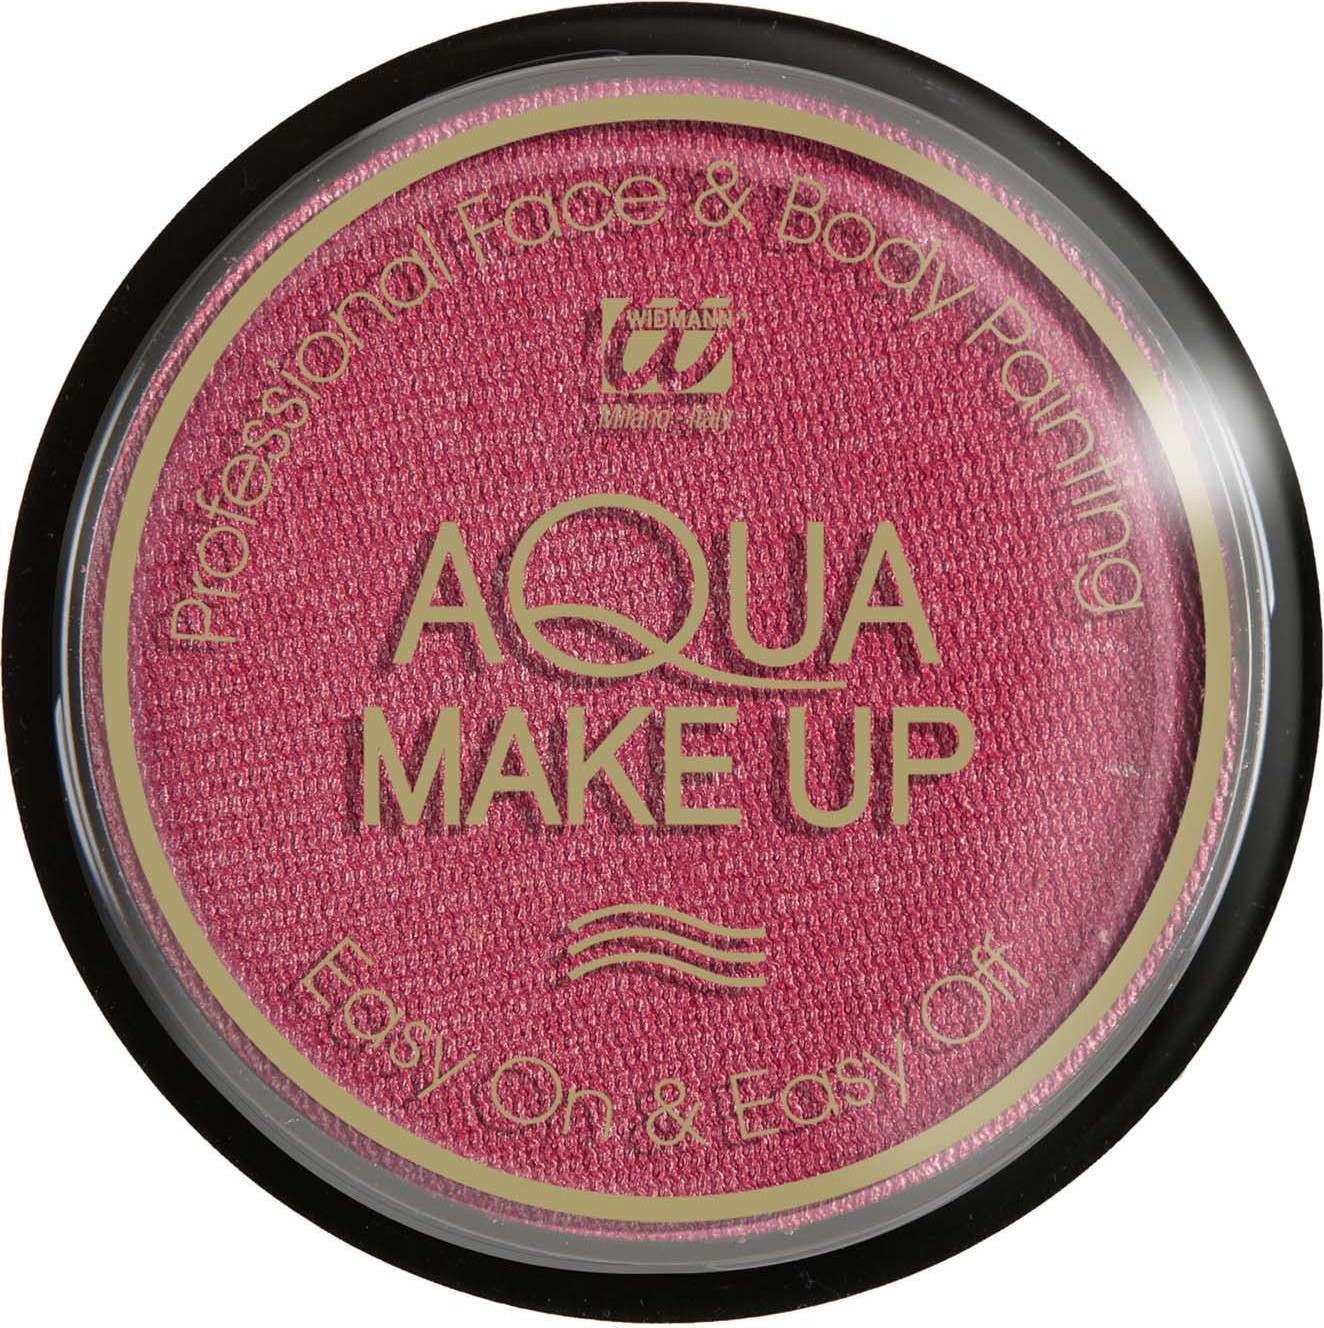 Aqua Makeup 15G - Metallic Pink Makeup - (Pink)